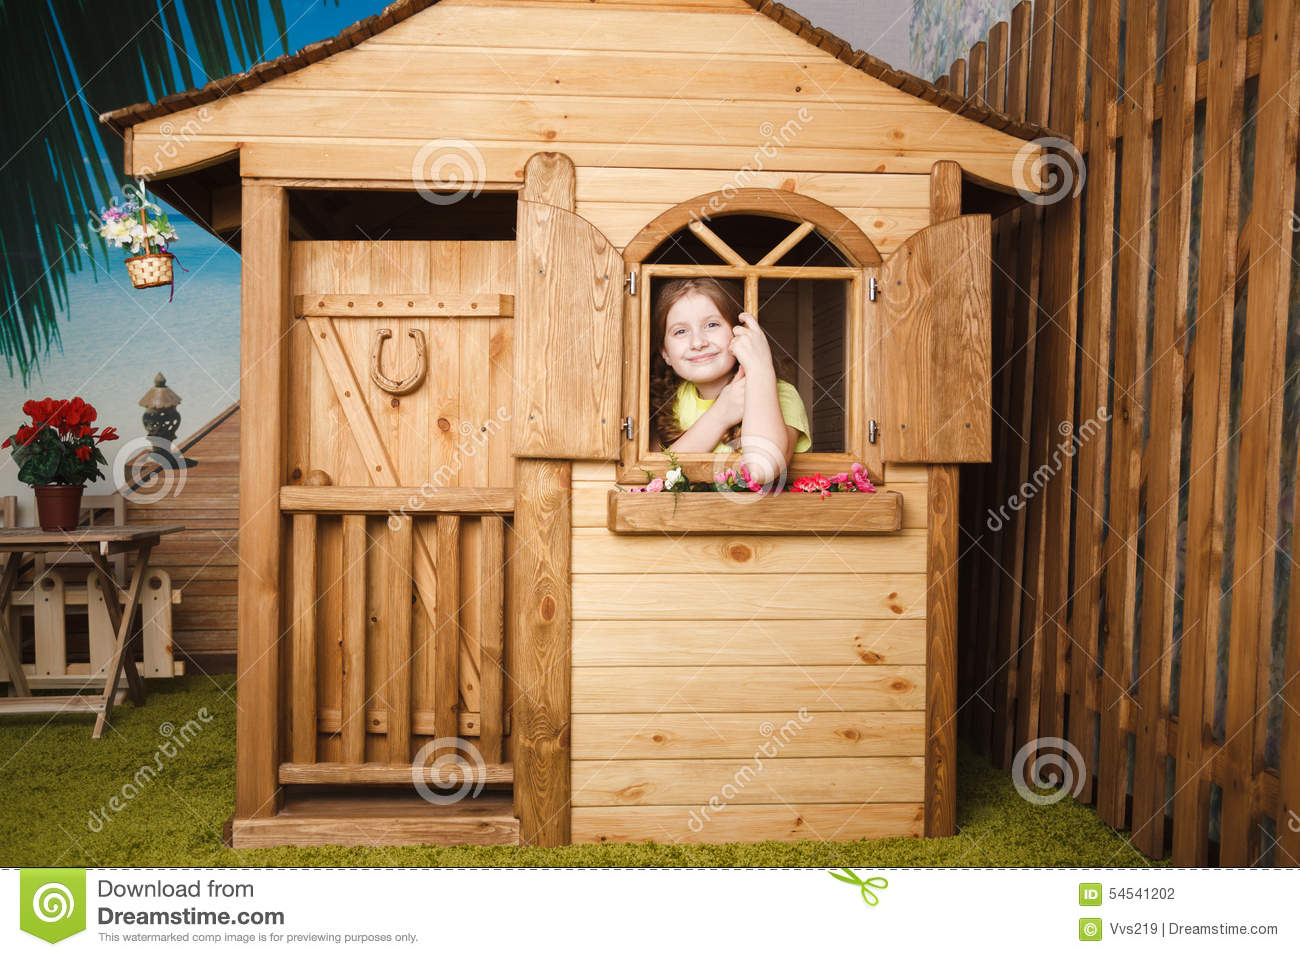 Cute little girl inside wooden house stock photo image for Cute houses inside